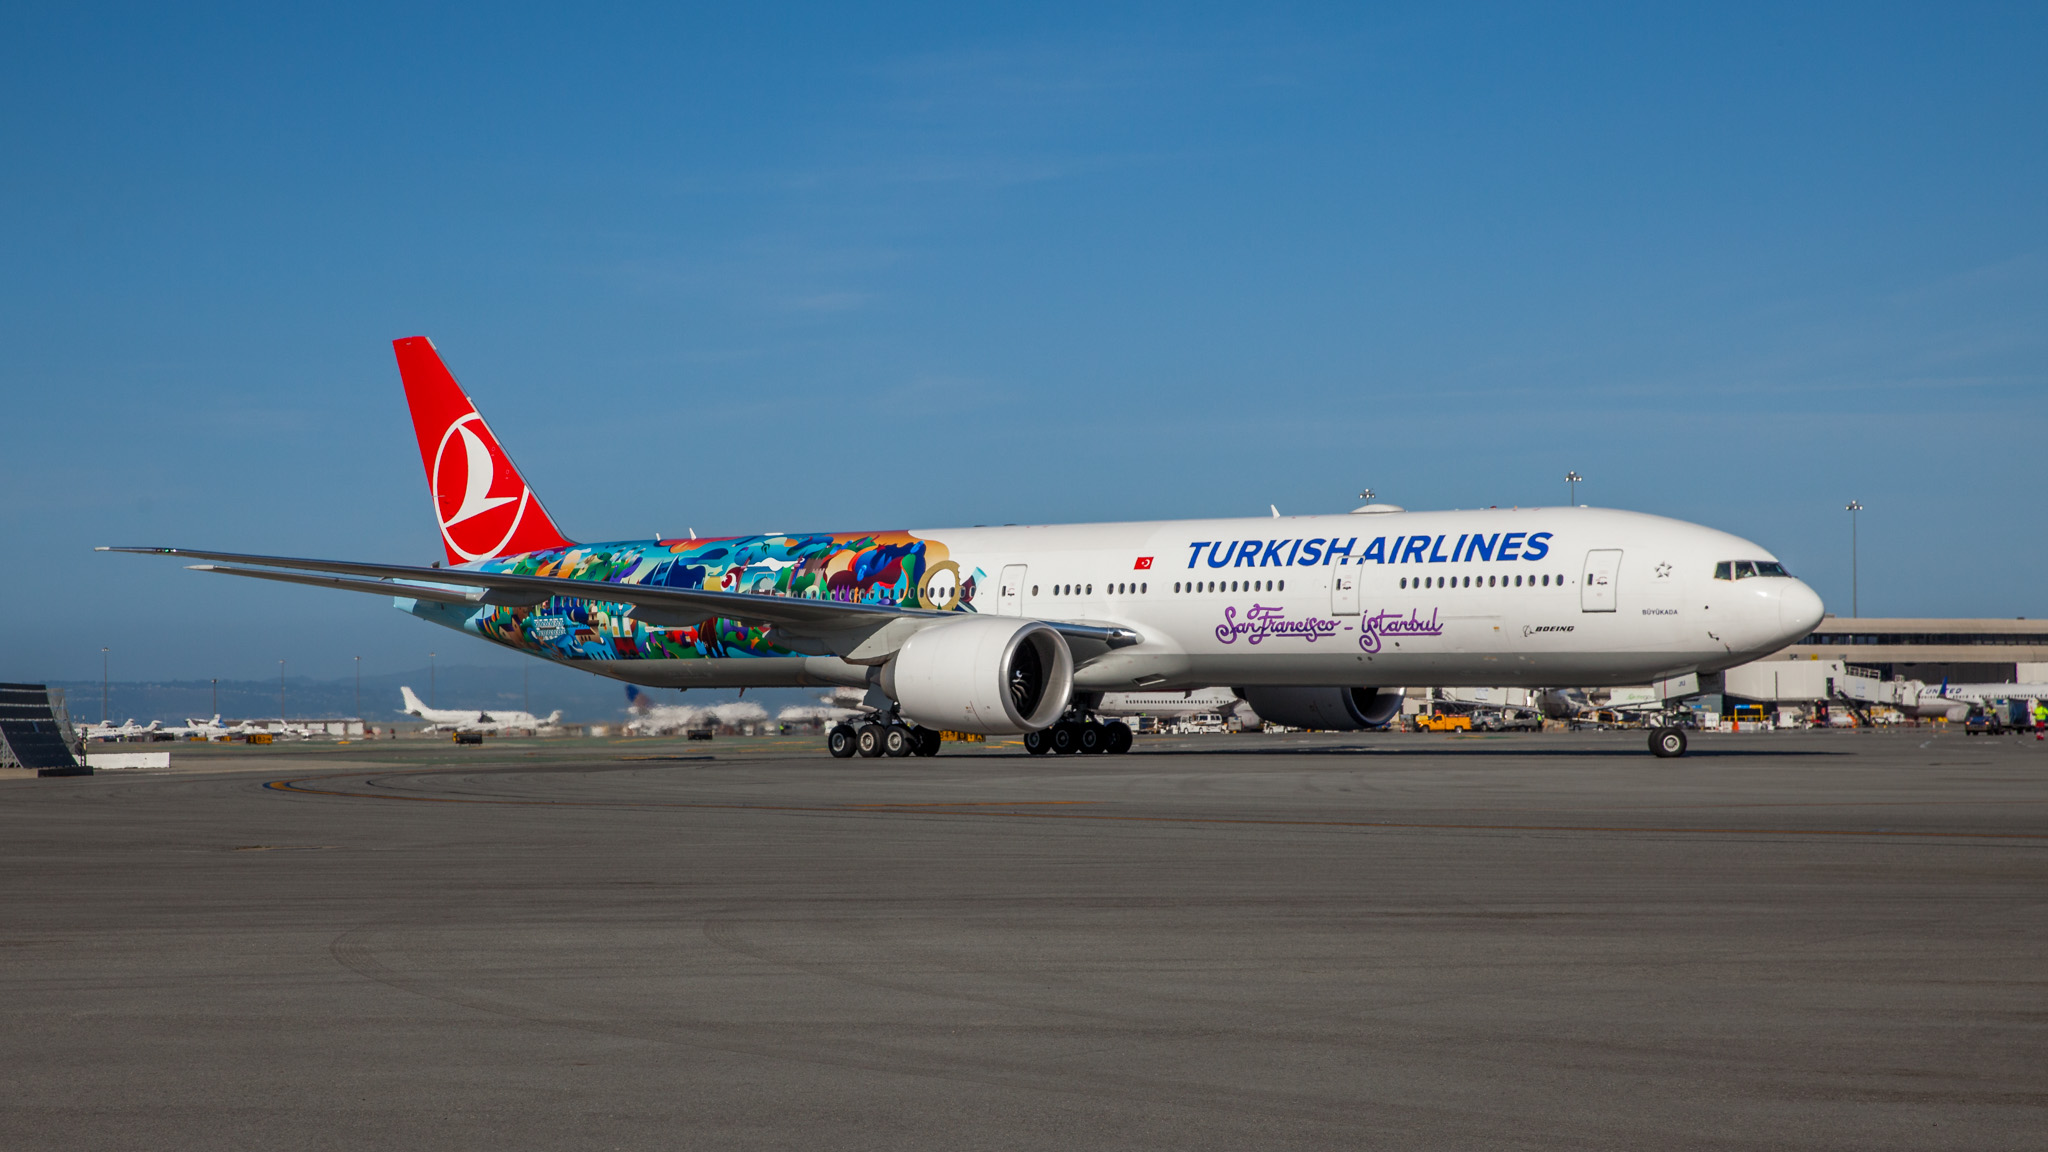 THY_Turkish Airlines_Boeing 777_Inaugural Flight_004